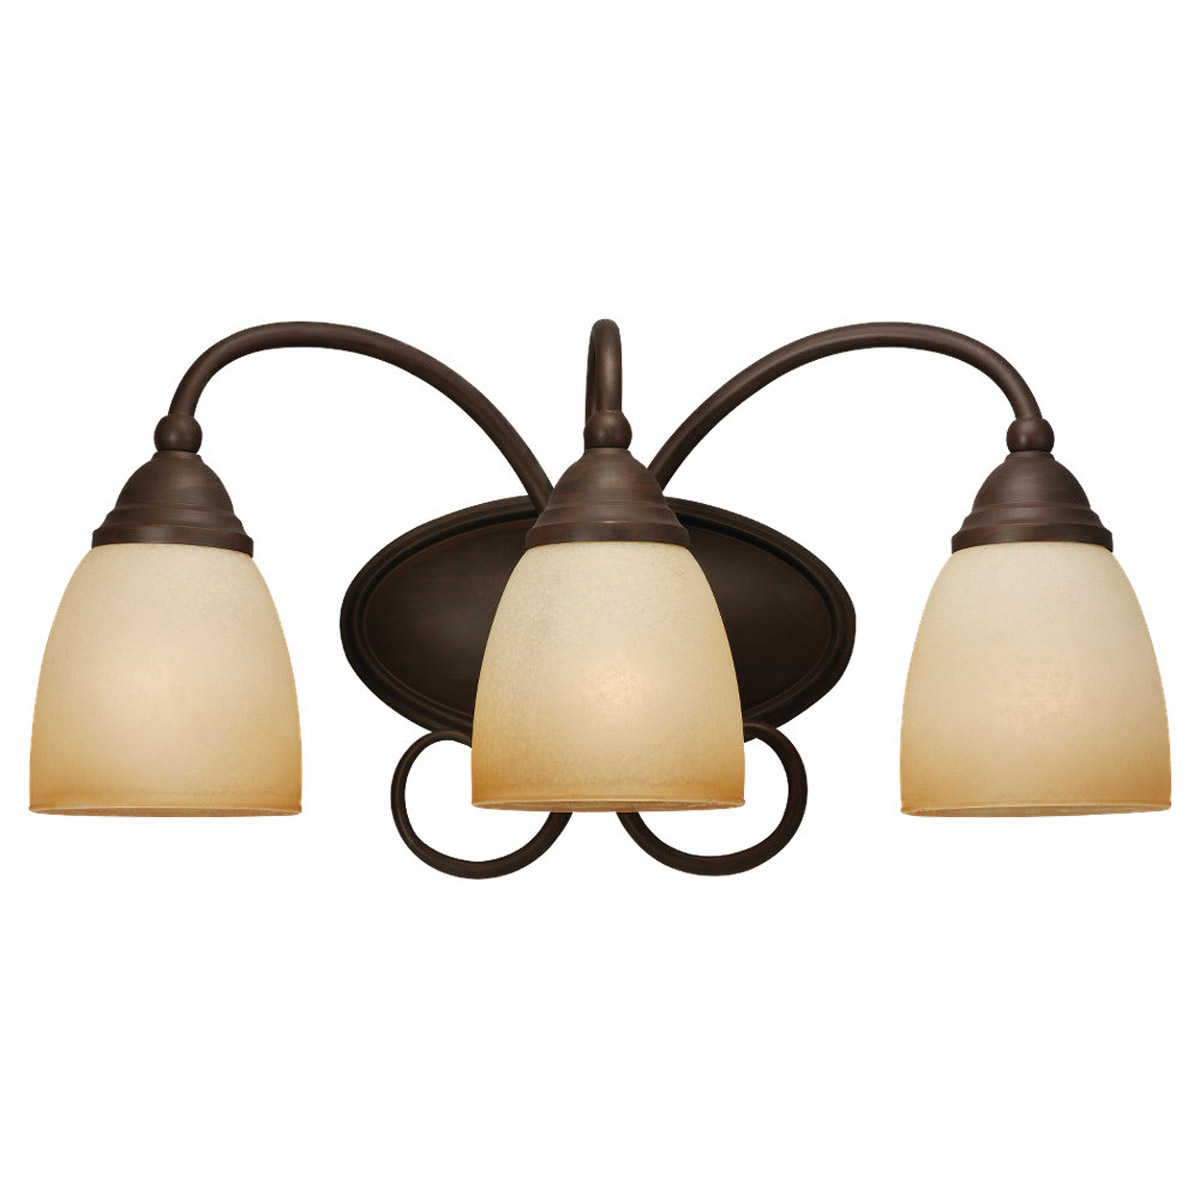 Sea Gull Lighting Montclaire 3 Light Bath Vanity in Olde Iron 44106-72